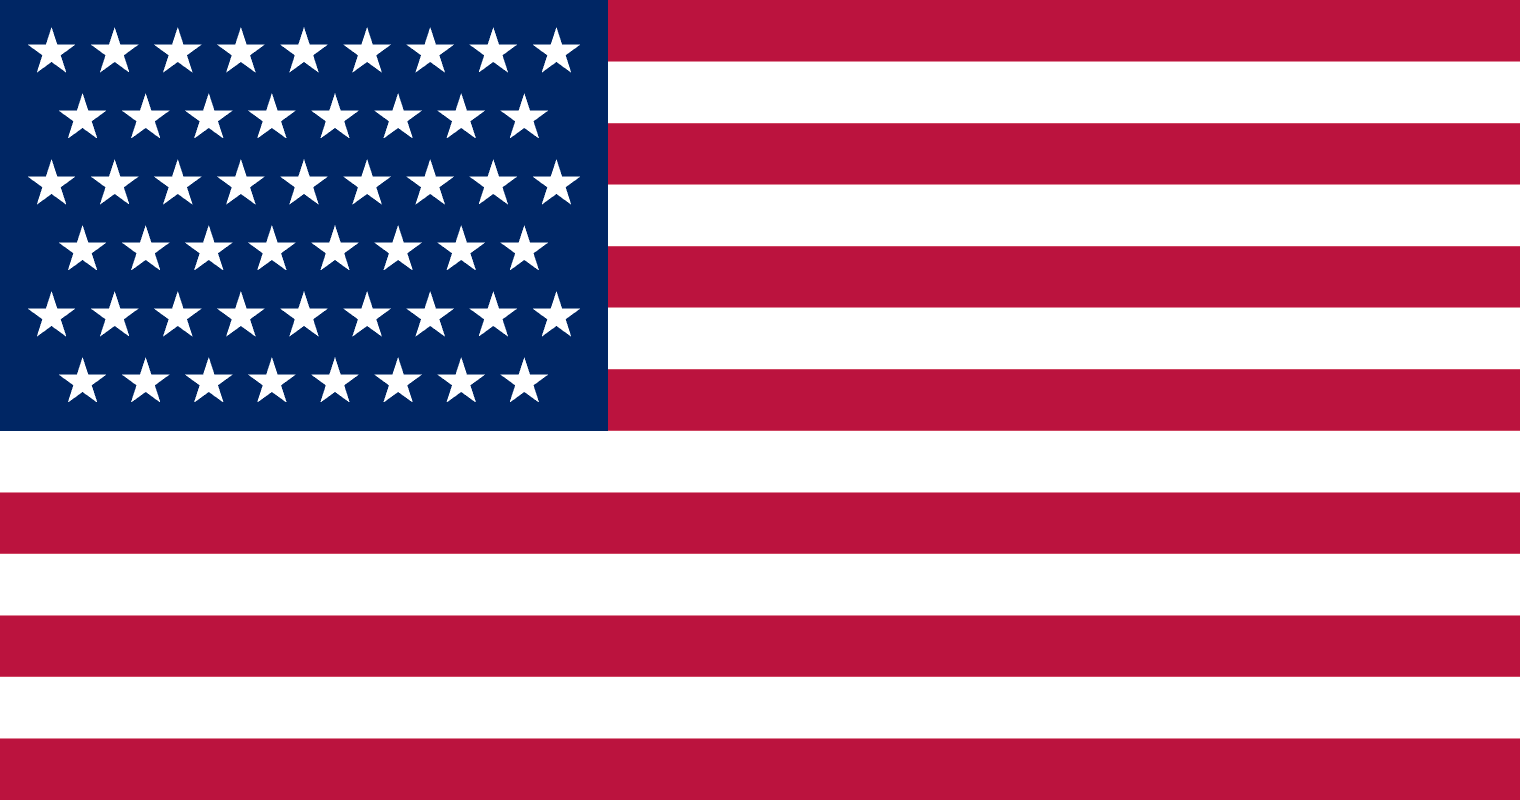 file us flag large 51 stars png wikimedia commons